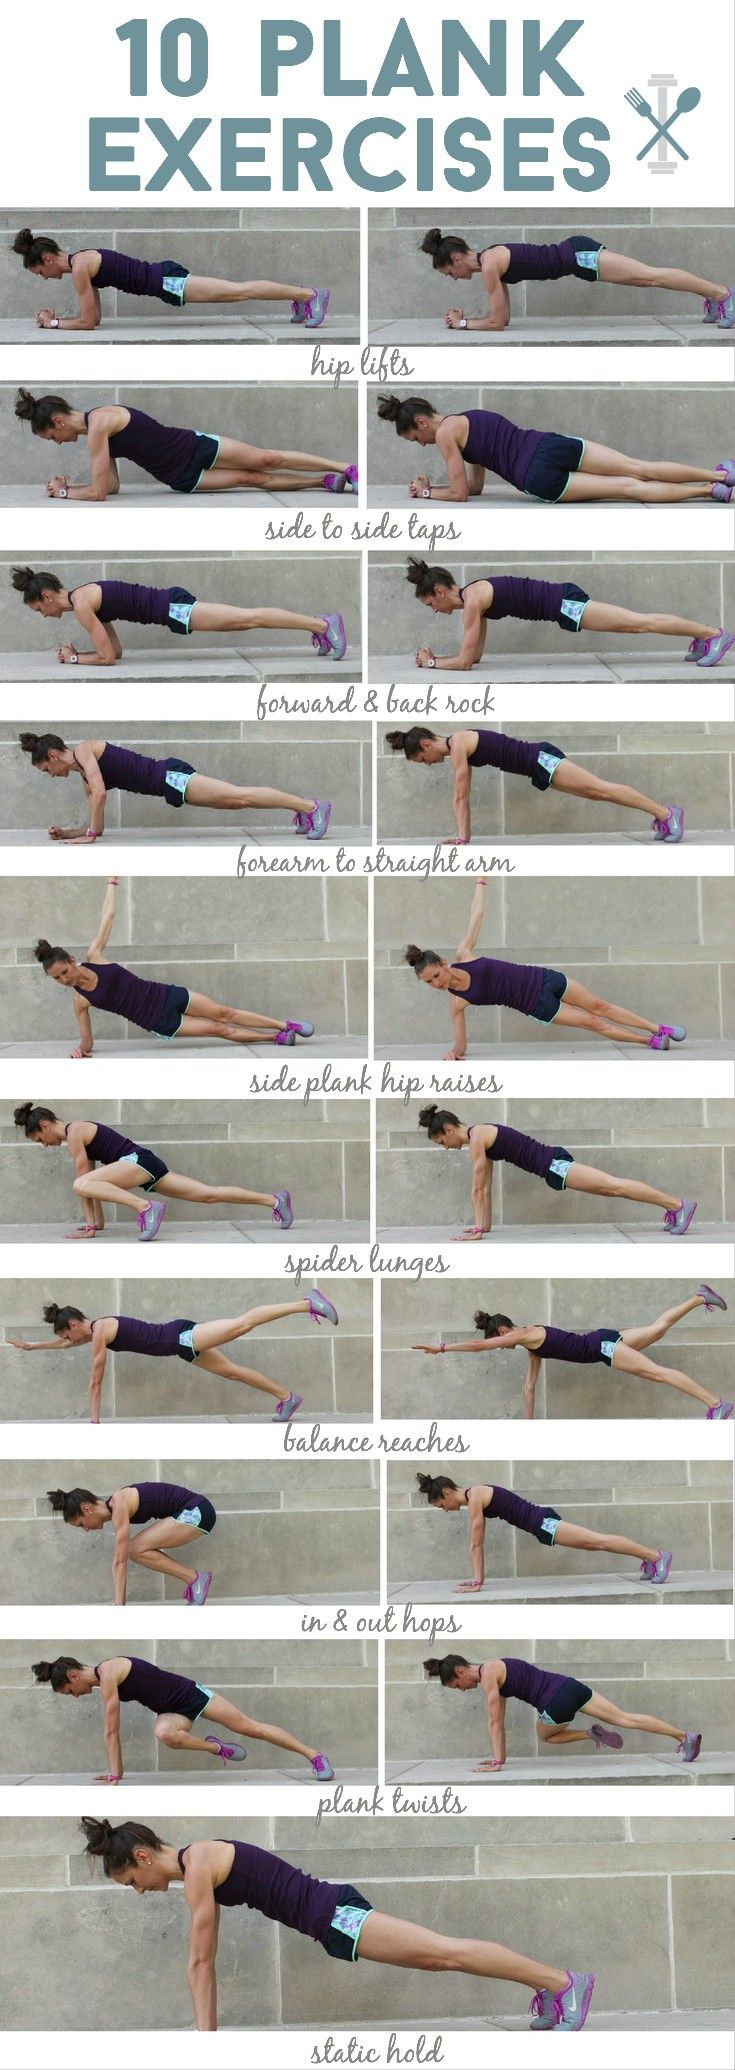 TEN different ways you can plank for a full body workout! Complete tutorial at physicalkitchness.com